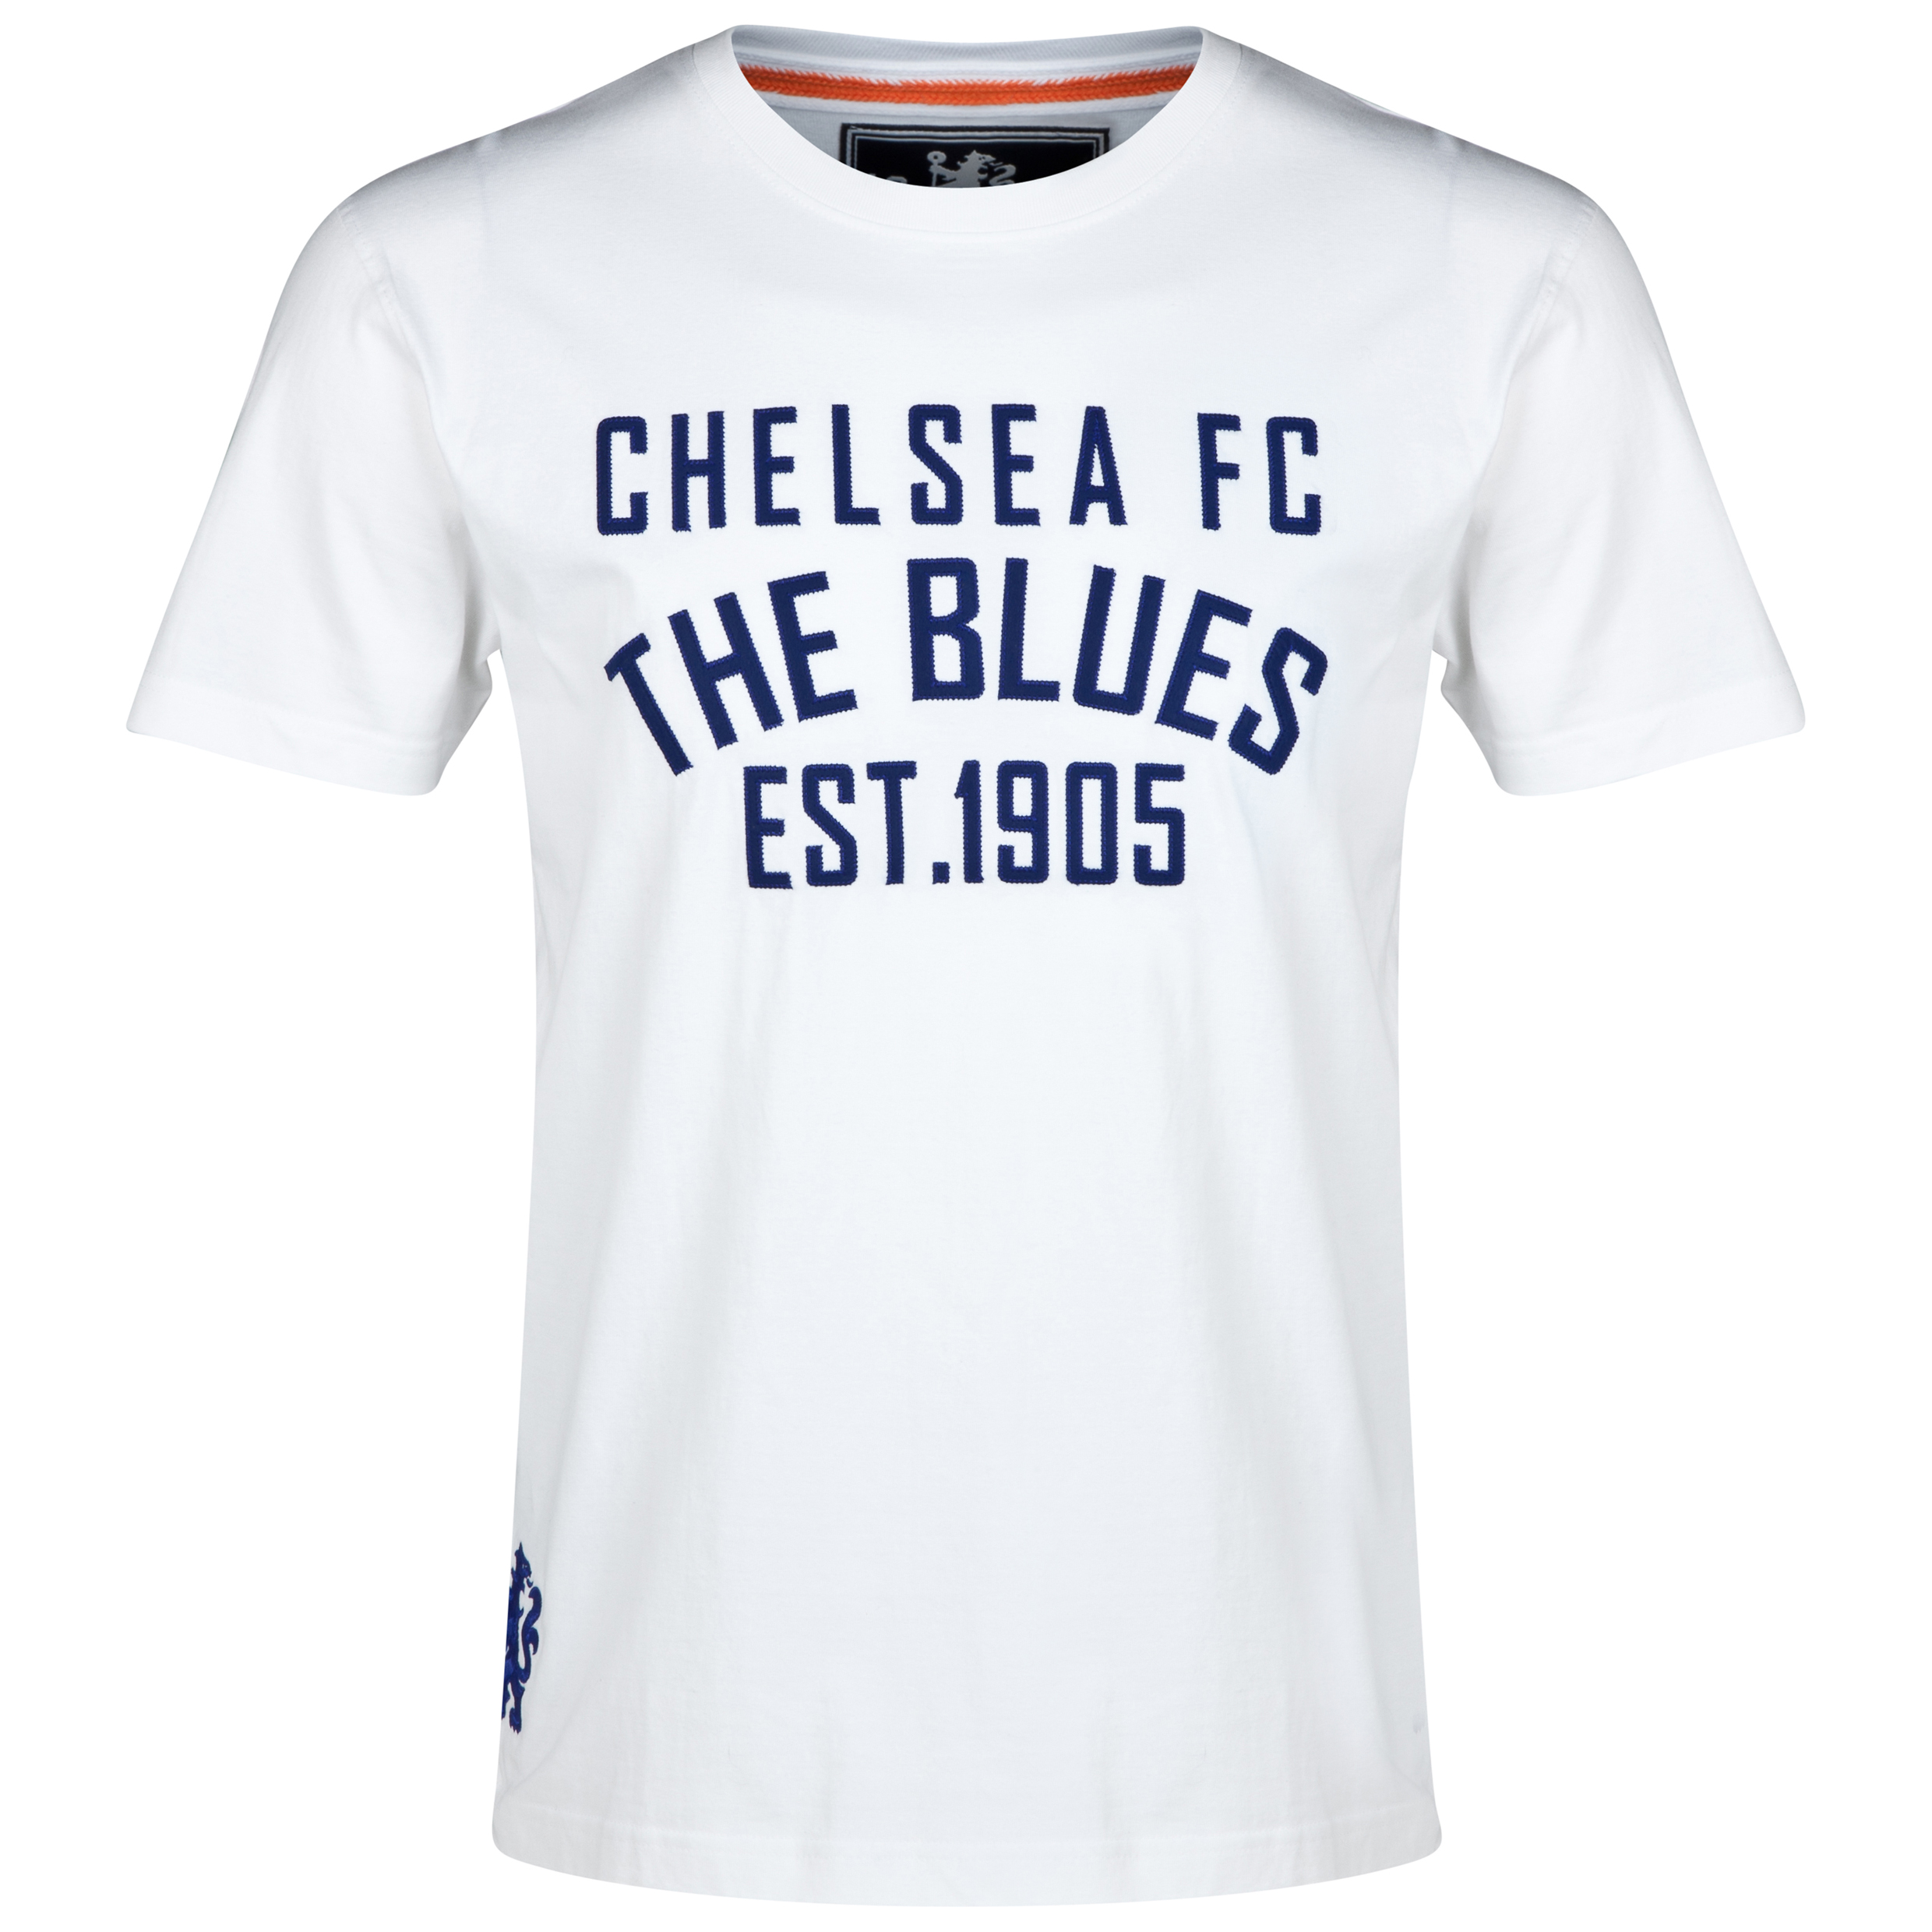 Chelsea Heritage Graphic T-Shirt - Mens White